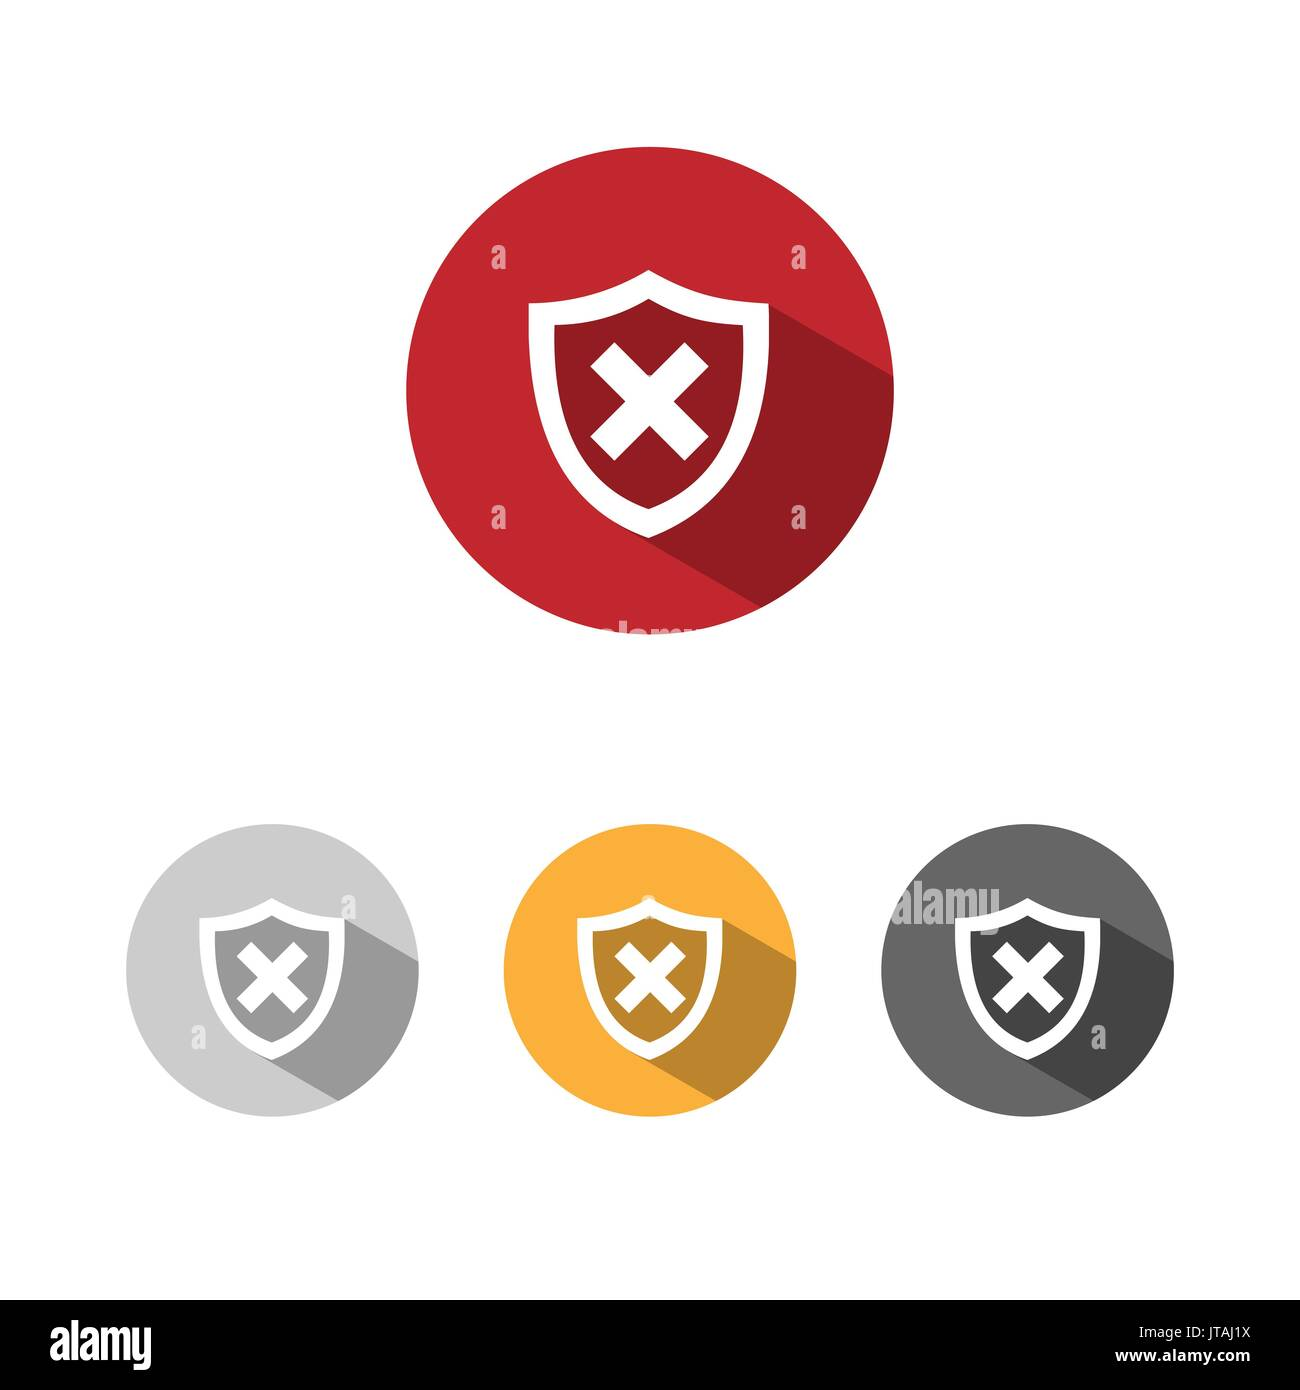 Unprotected shield icon with shade on colored buttons - Stock Image